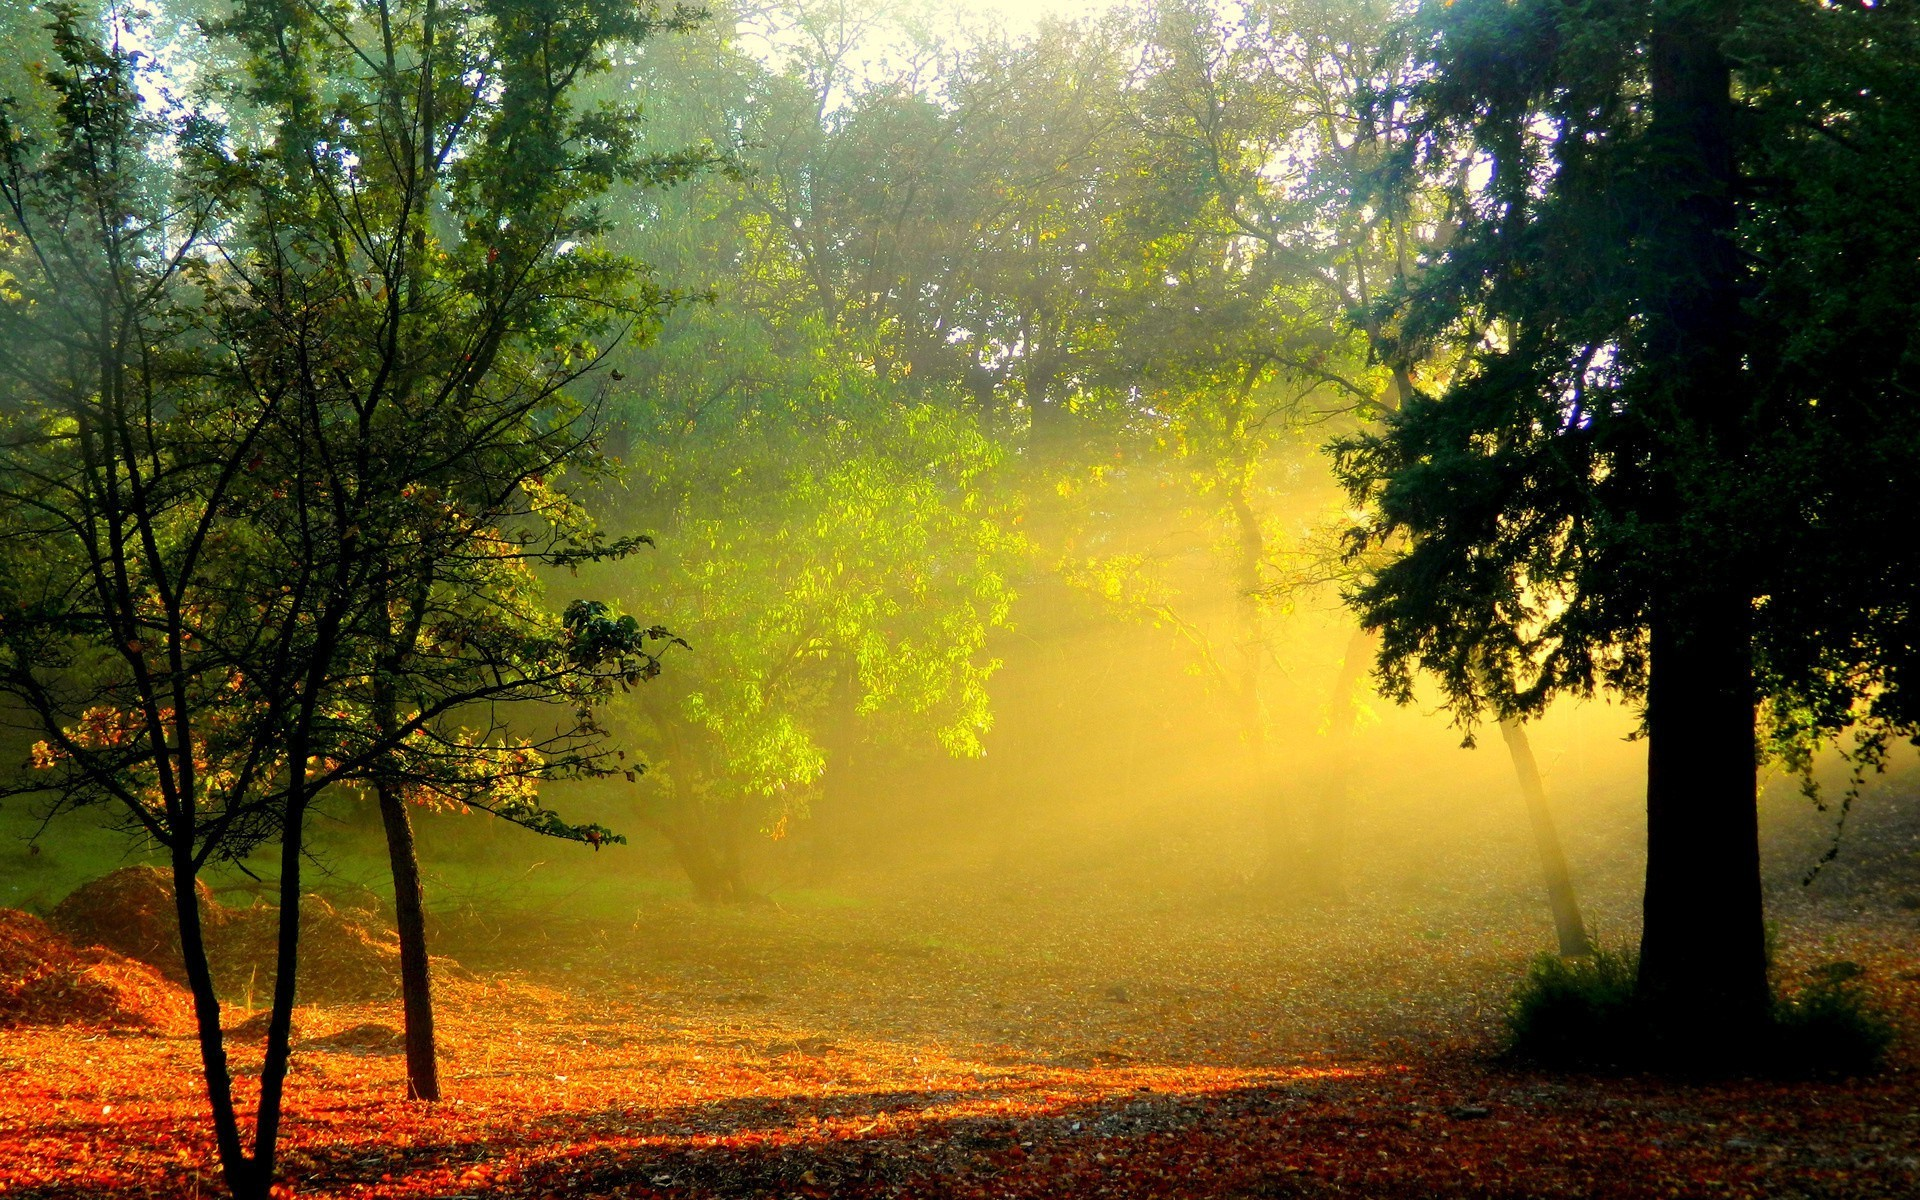 autumn dawn tree landscape mist wood fog nature sun leaf fall fair weather sunset backlit park countryside outdoors sunbeam summer light